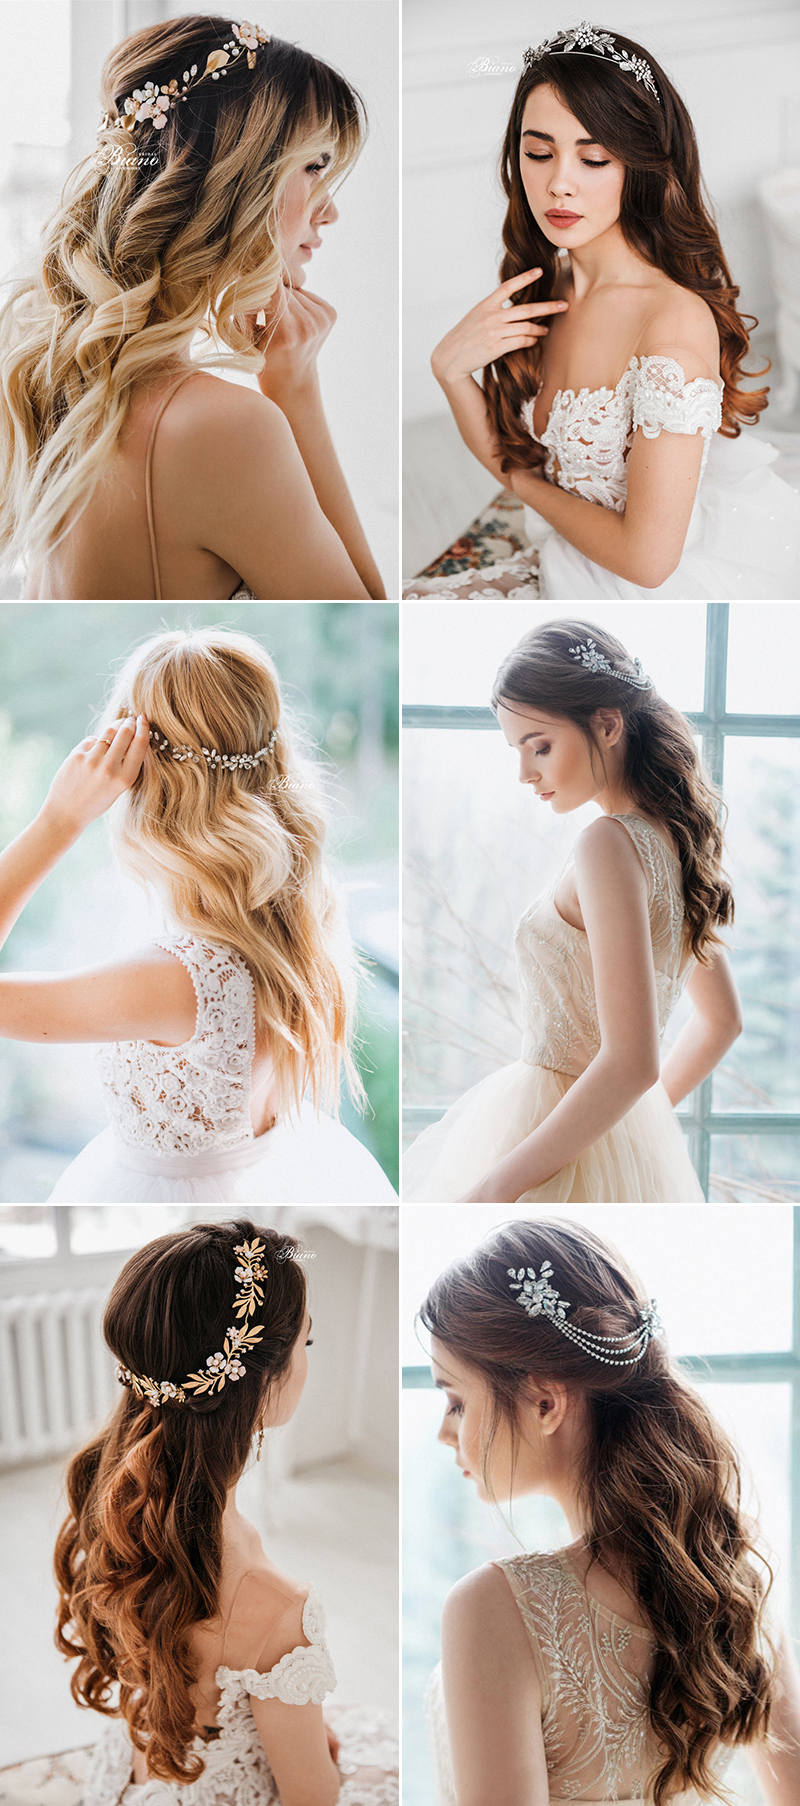 Bridal Hair Accessories For Every Wedding Hairstyle